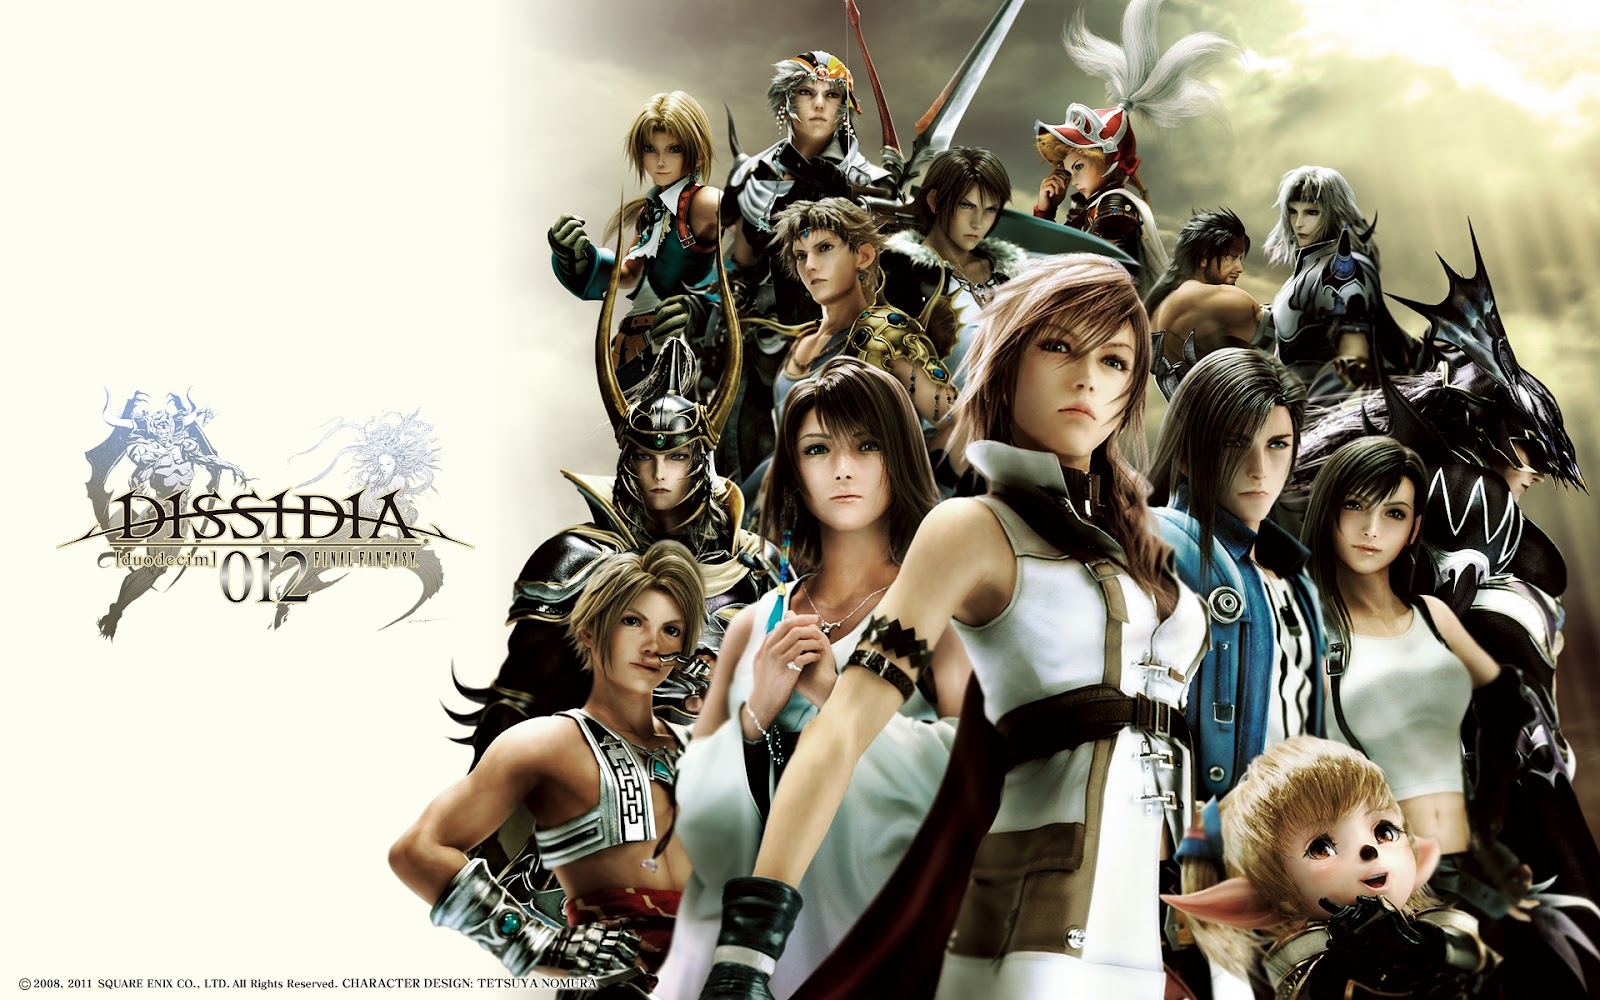 Final Fantasy Dissidia 012 Ff Wallpaper Background Square Enix Action Jrpg Japanese Role Playing Game Img Image Pic Picture